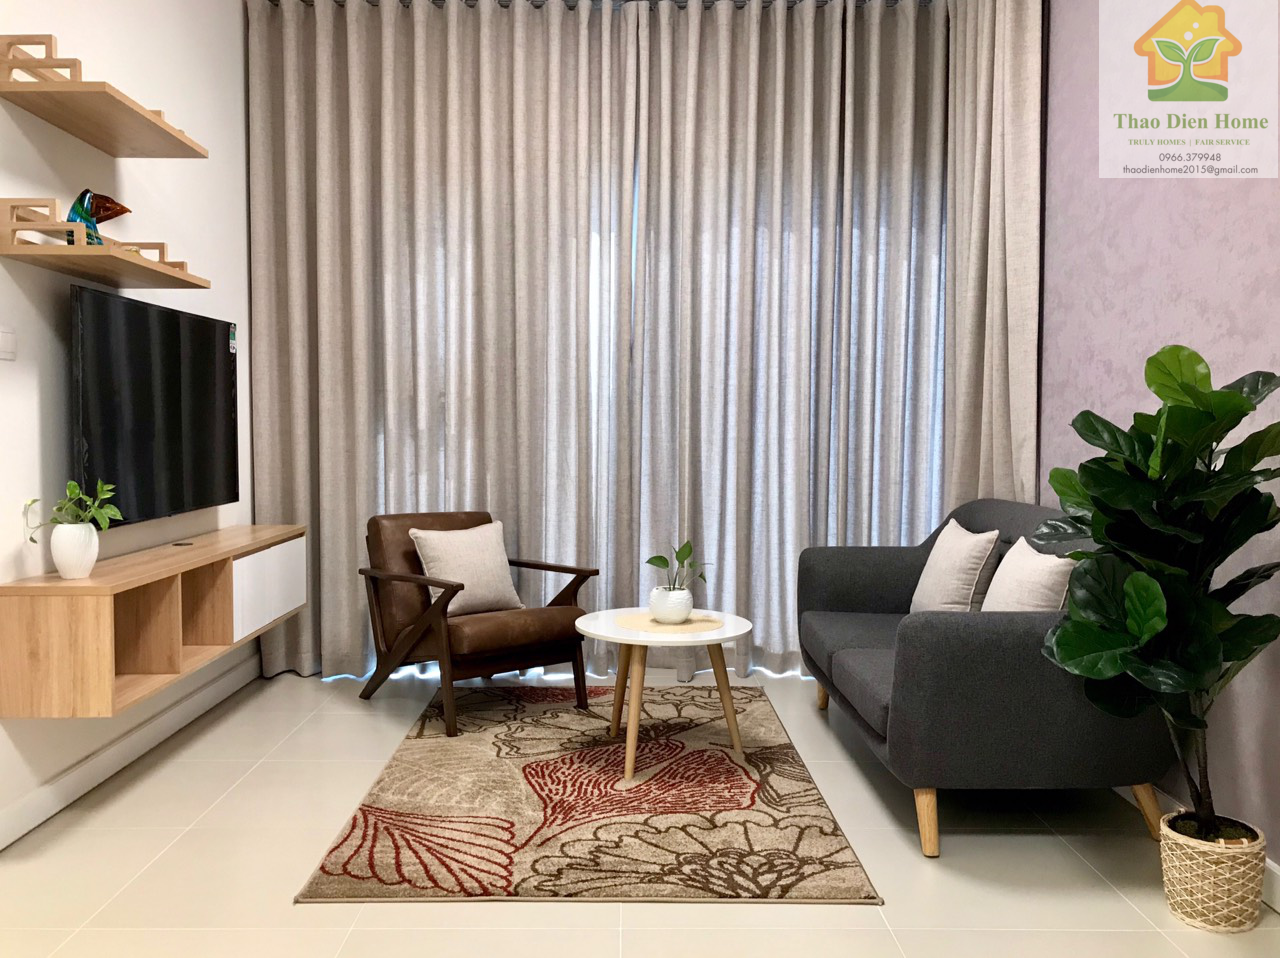 Gateway Thao Dien apartment – 1 Bedroom – Nice furniture, very quite and stunning view